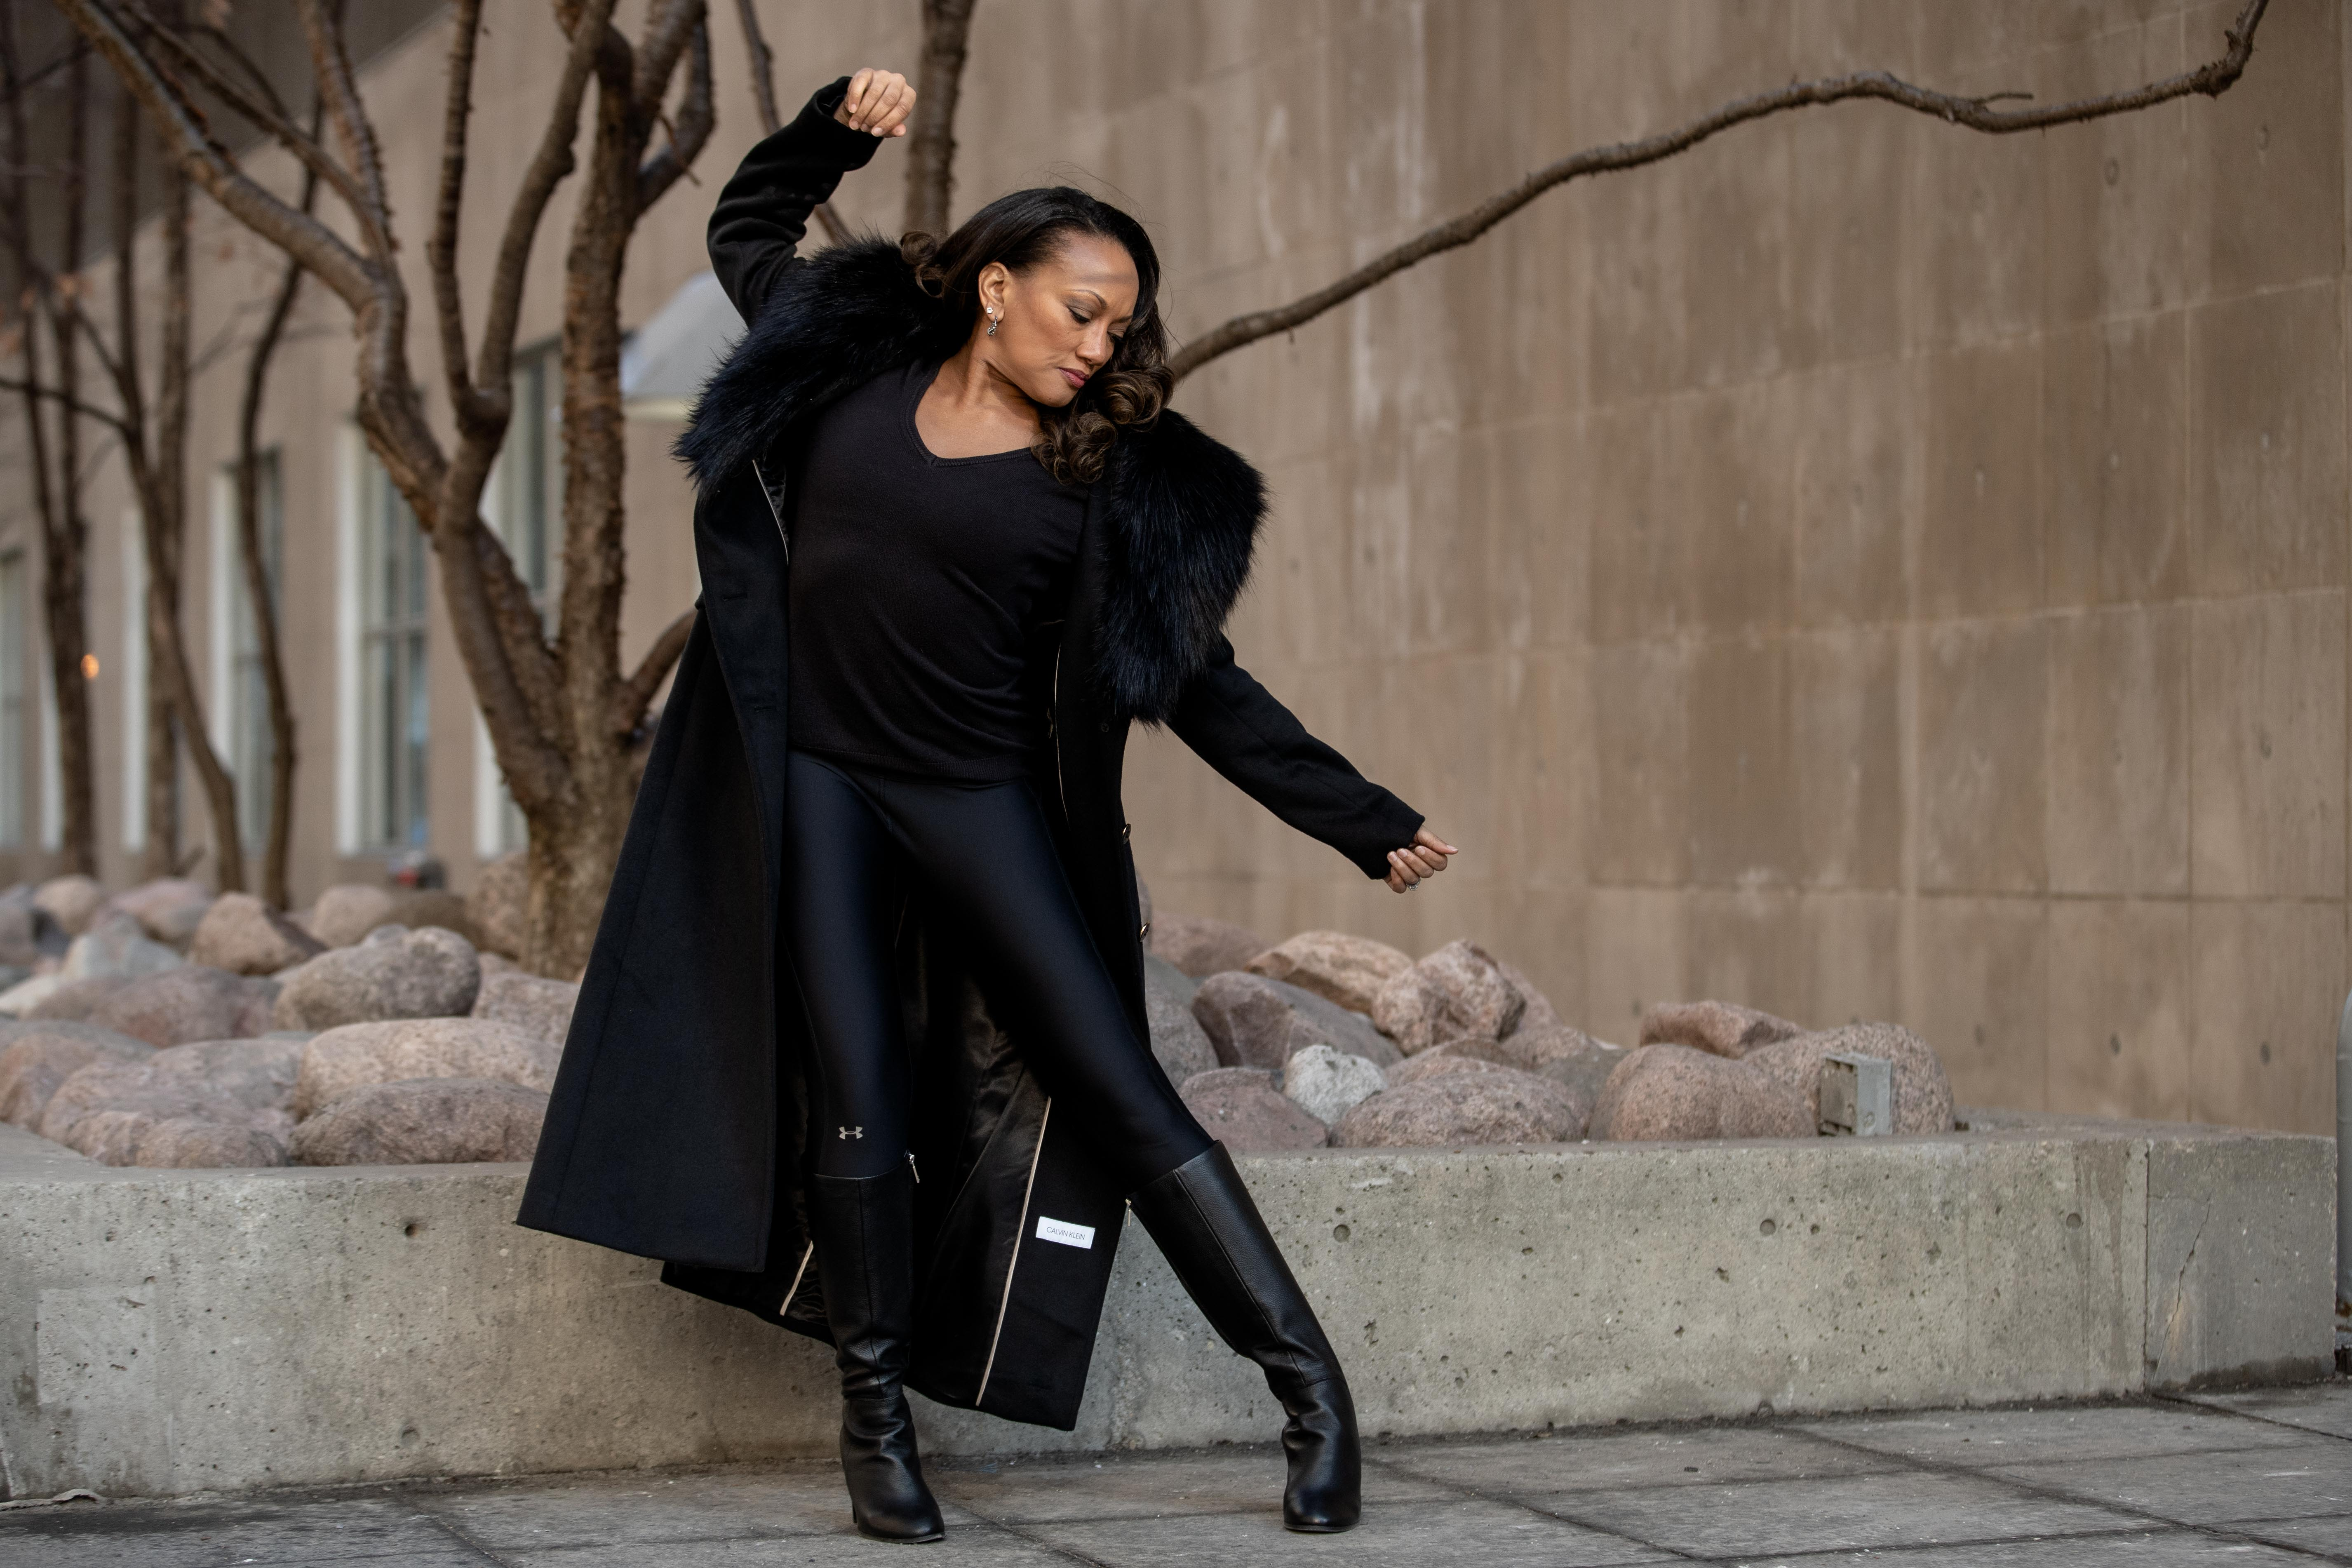 Linda-Denise Fisher-Harrell, the new artistic director of the Hubbard Street Dance Company, dances while posing for a portrait in the Gold Coast neighborhood, Saturday afternoon, March 6, 2021.   Pat Nabong/Sun-Times